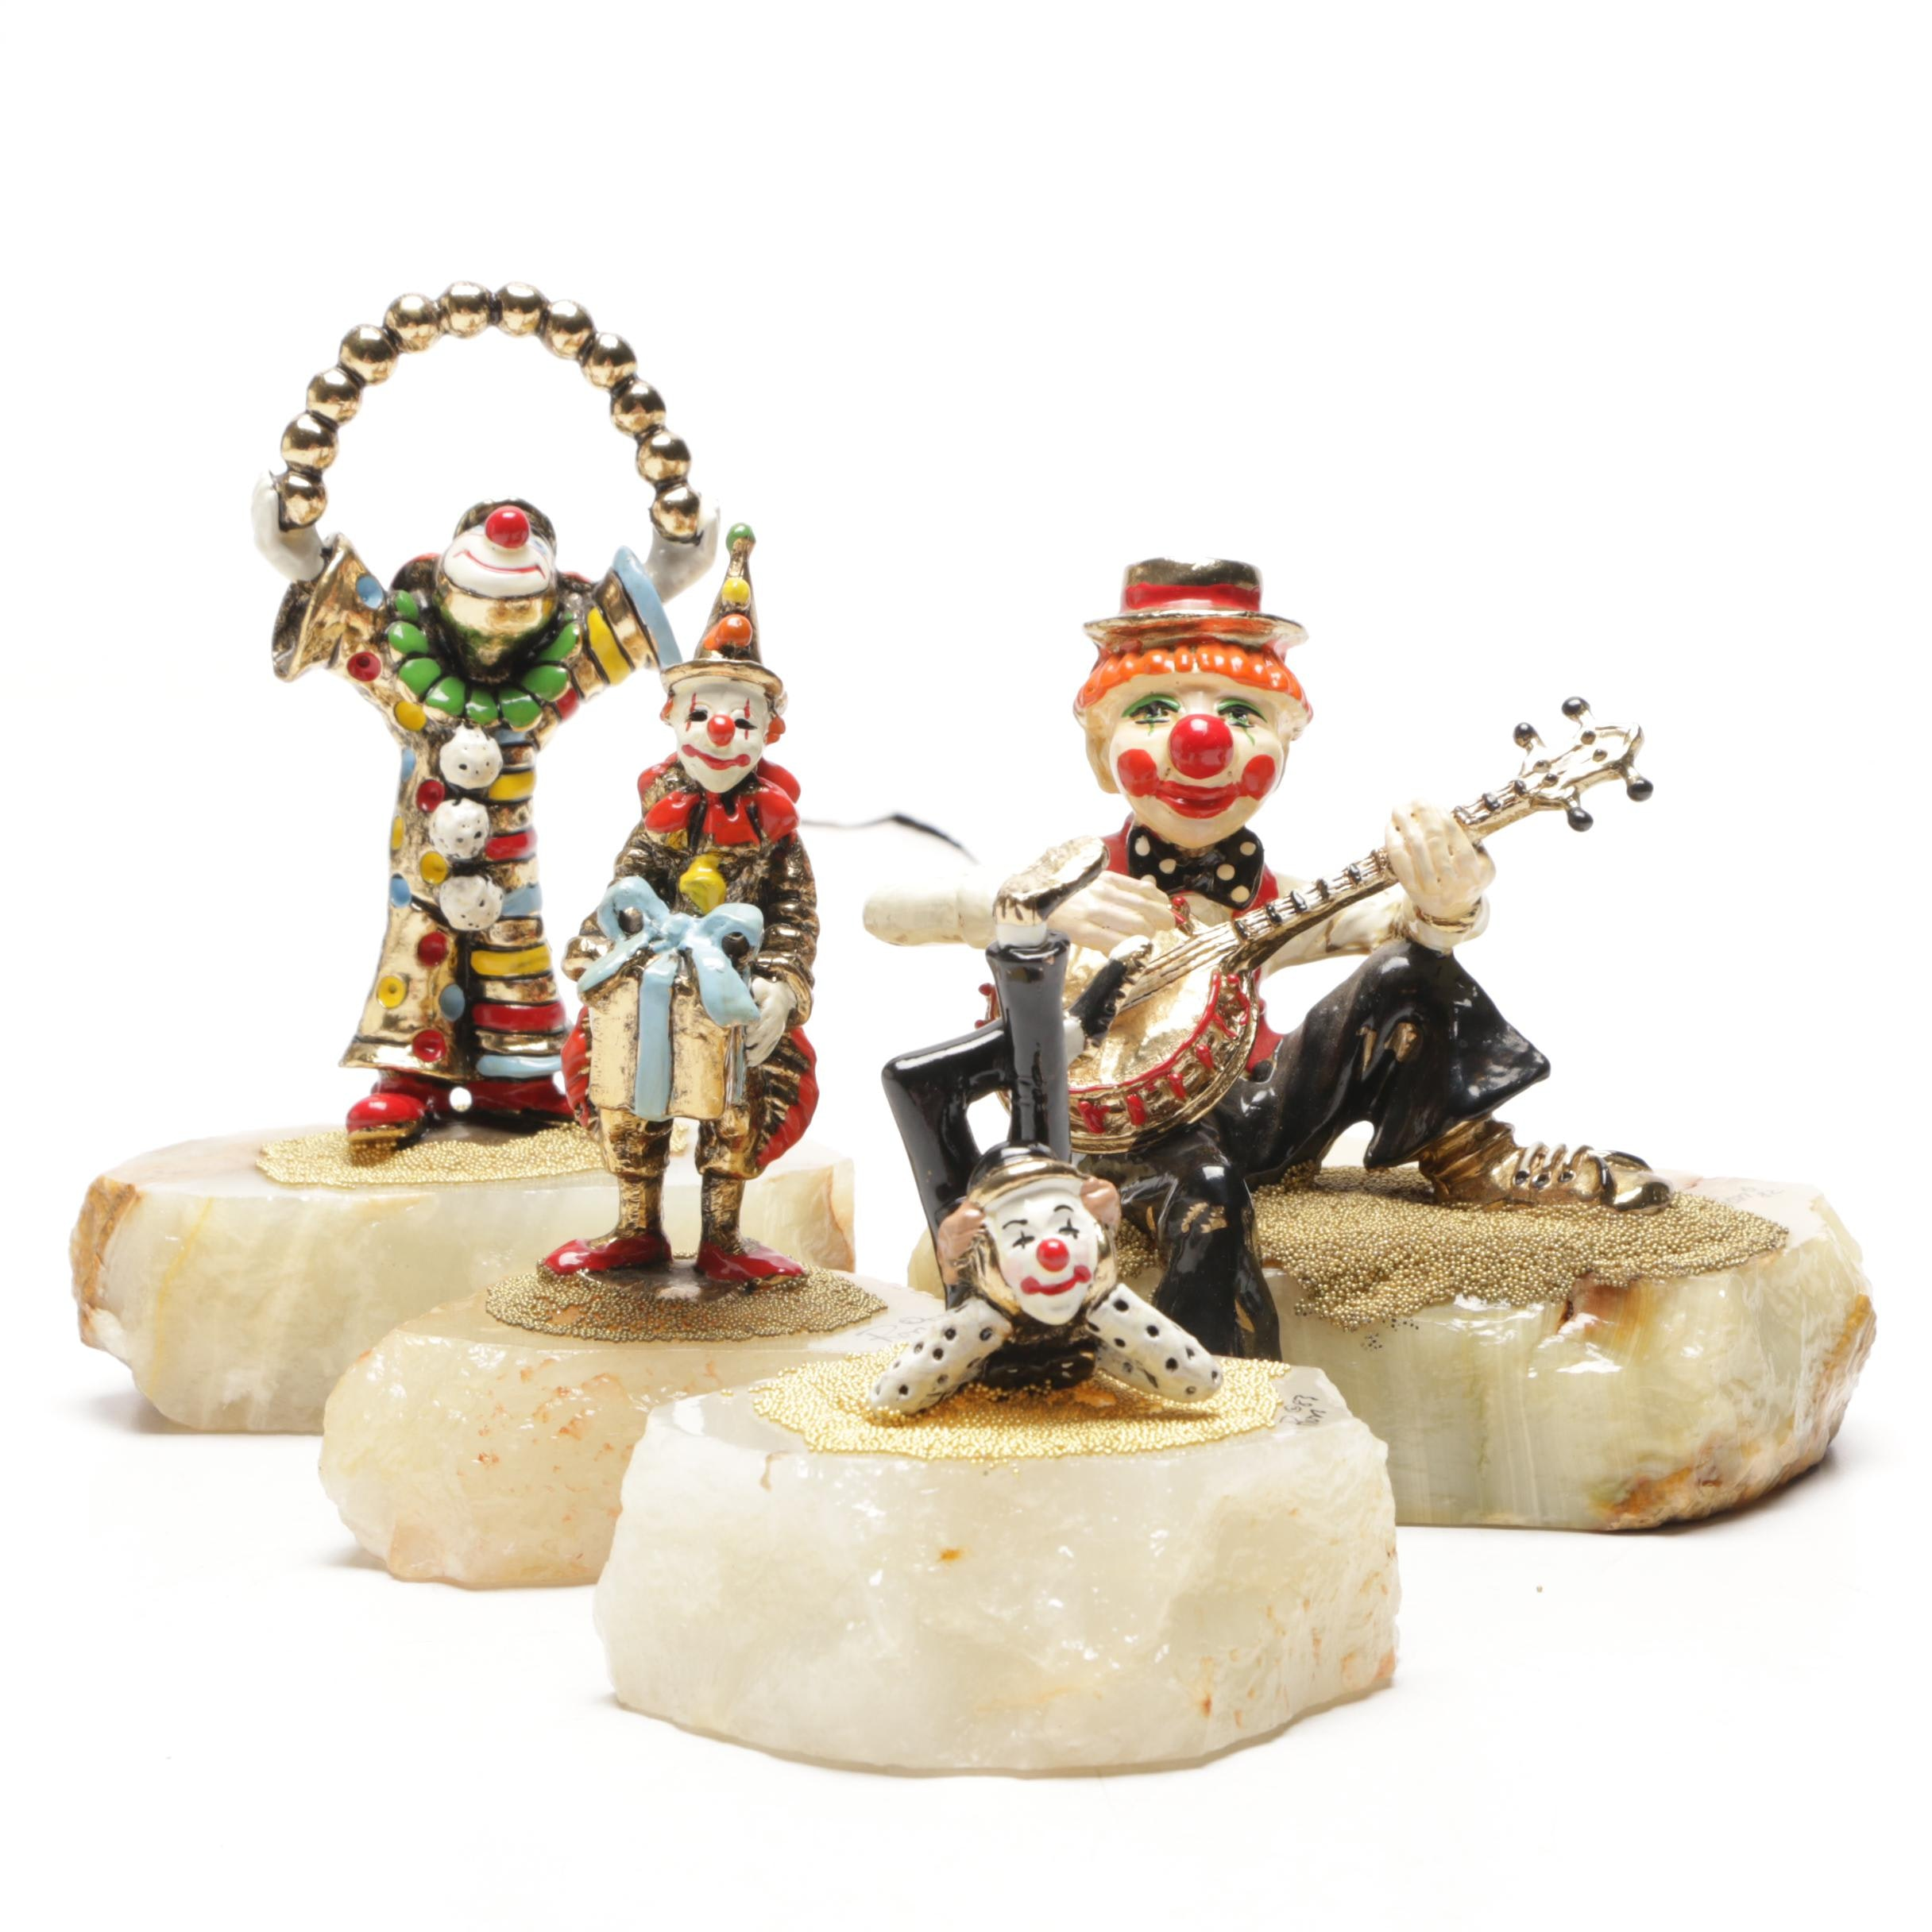 Ron Lee Handcrafted Metal Clown Figurines on Onyx Bases